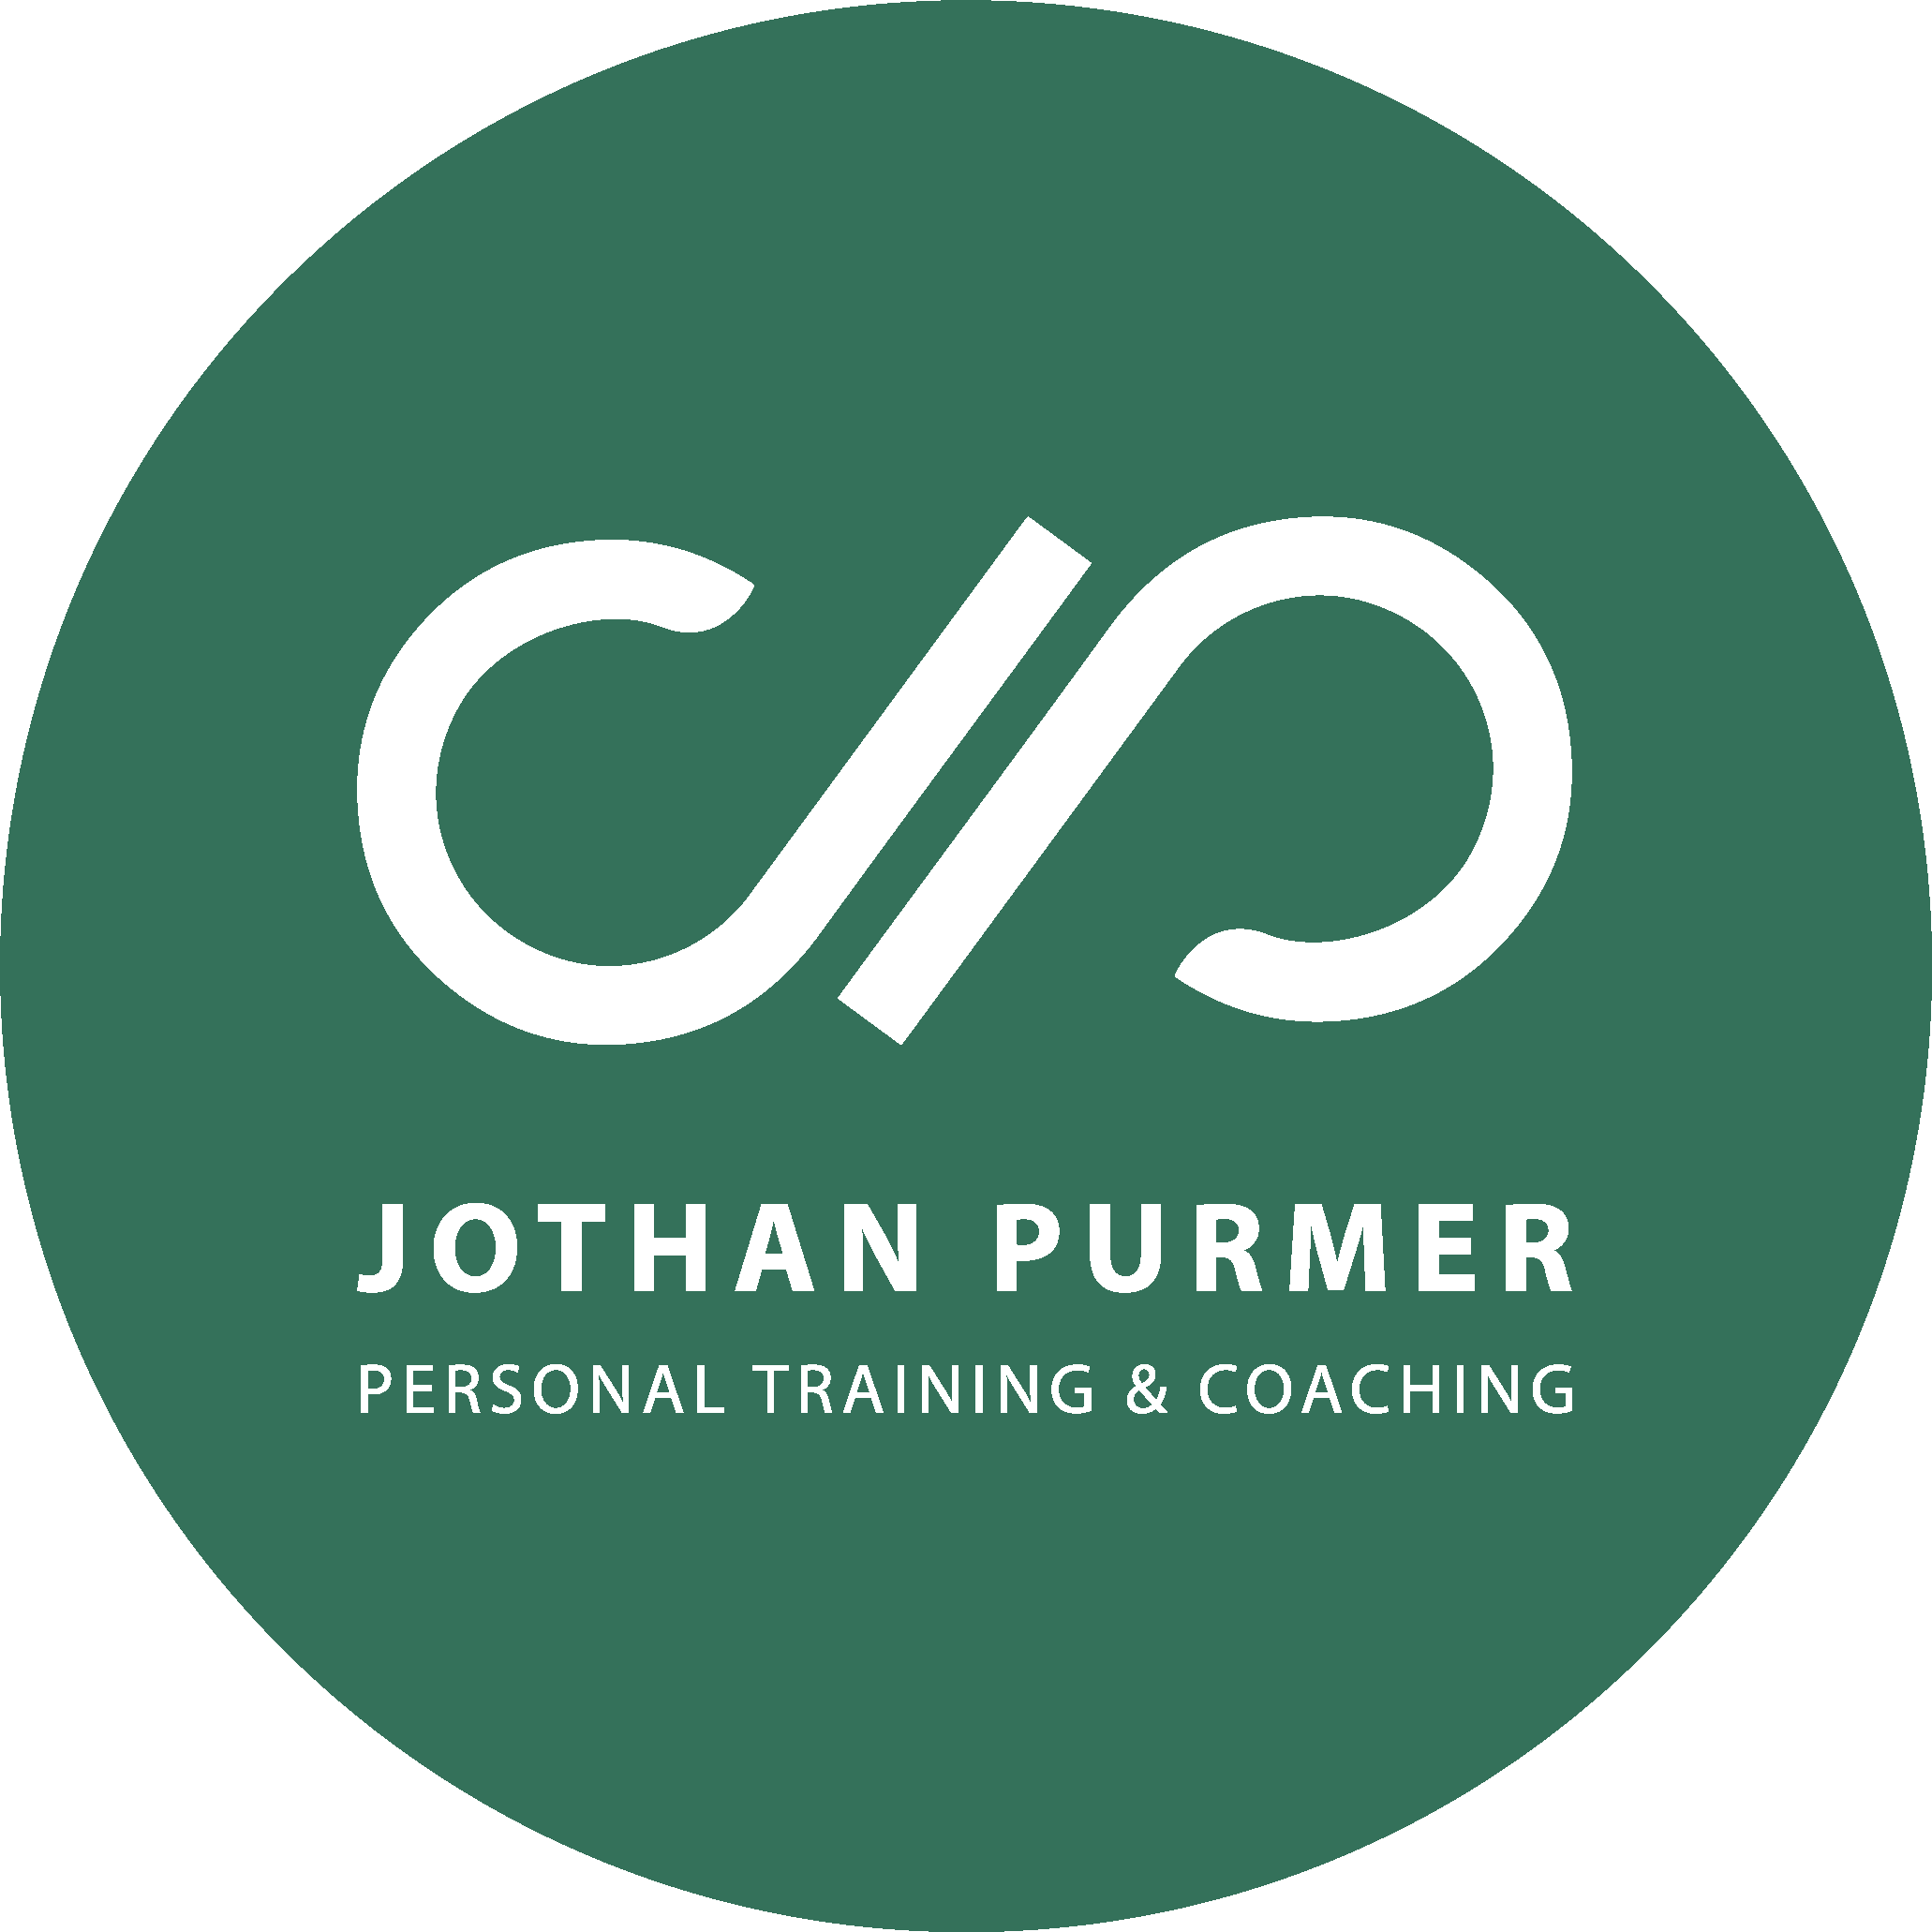 Jothan Purmer, Personal Training & Coaching